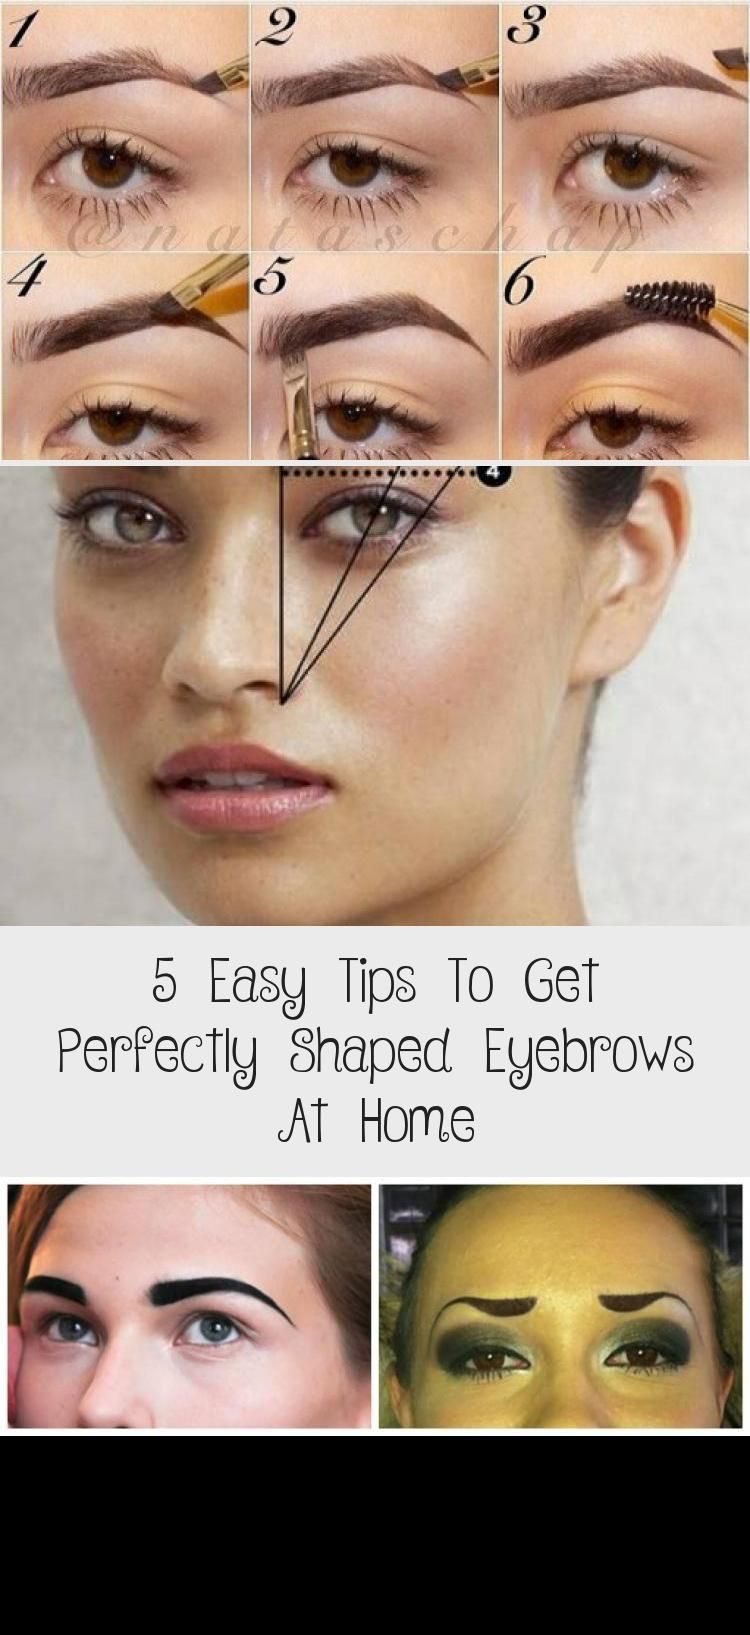 5 Easy Tips To Get Perfectly Shaped Eyebrows At Home #perfecteyebrows